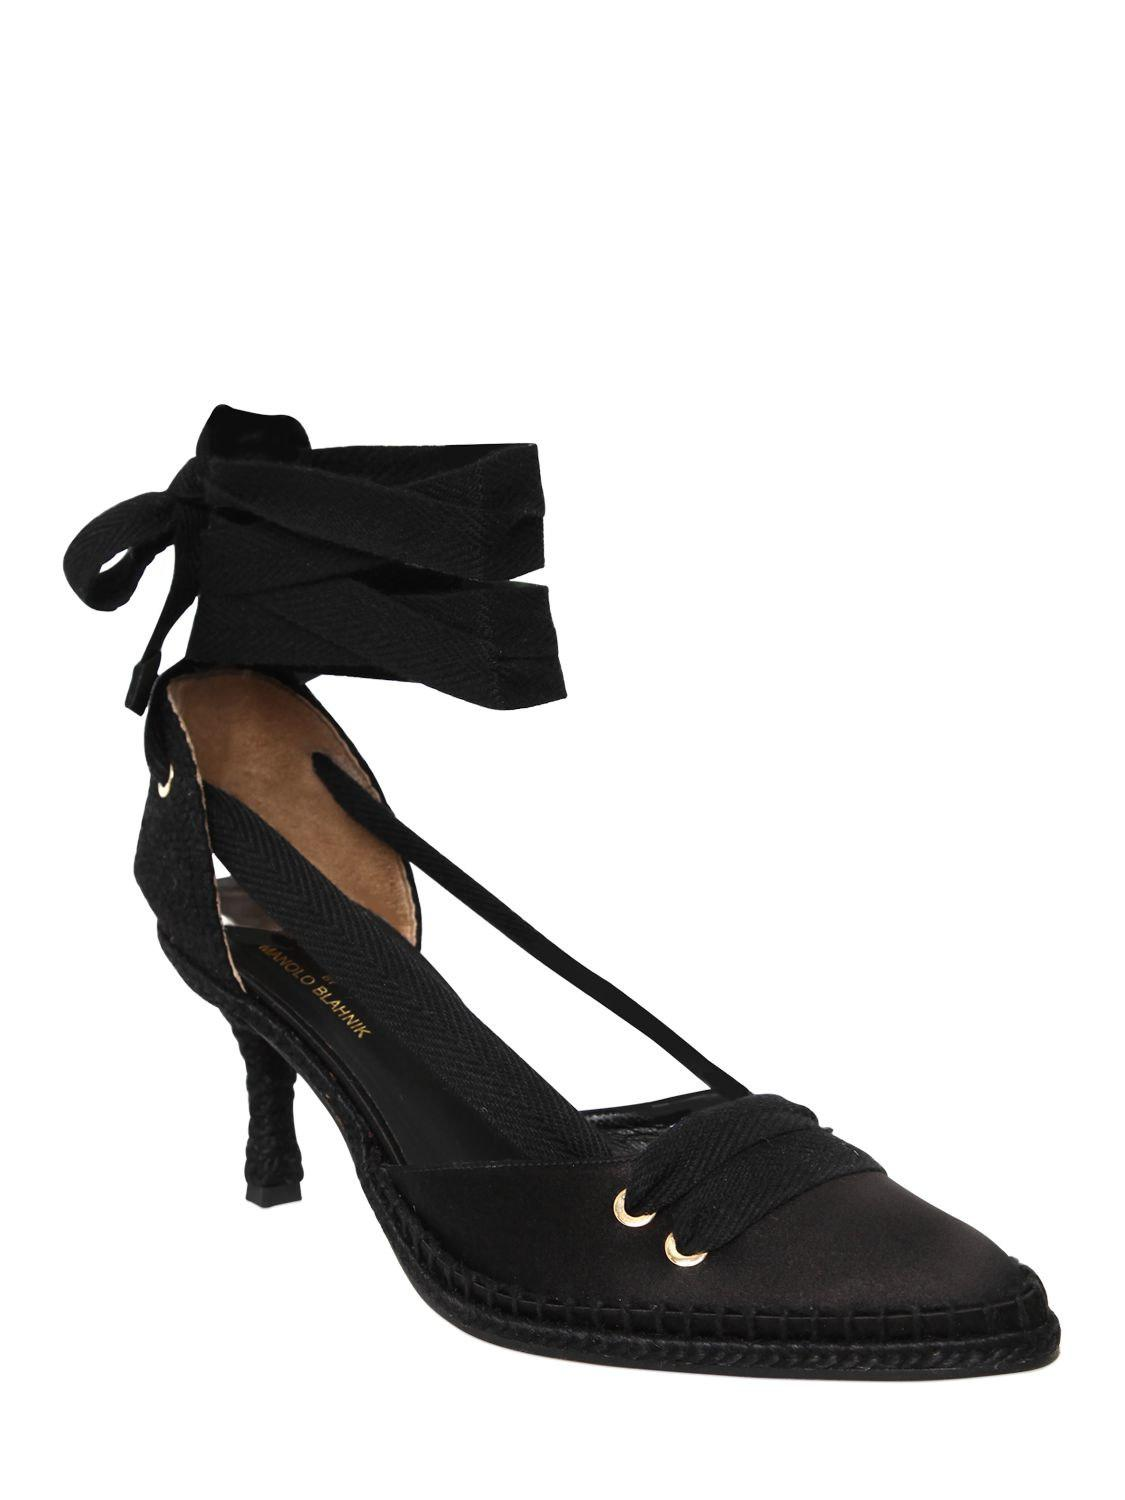 Manolo Blahnik 70MM MANOLO NIGHT SATIN LACE-UP PUMPS For Sale Footlocker Limited Edition Cheap Online For Sale Cheap Online Low Cost Cheap Price New Styles ygzdqP